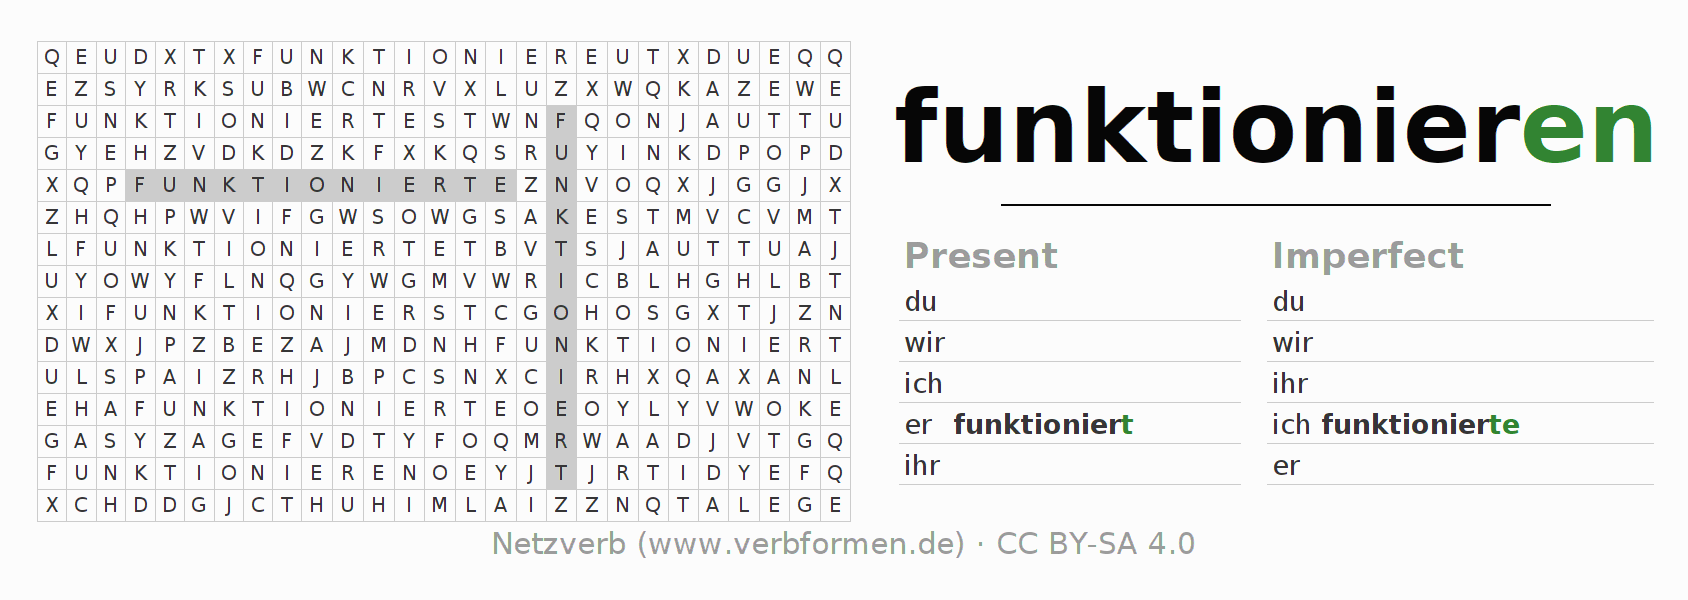 Word search puzzle for the conjugation of the verb funktionieren